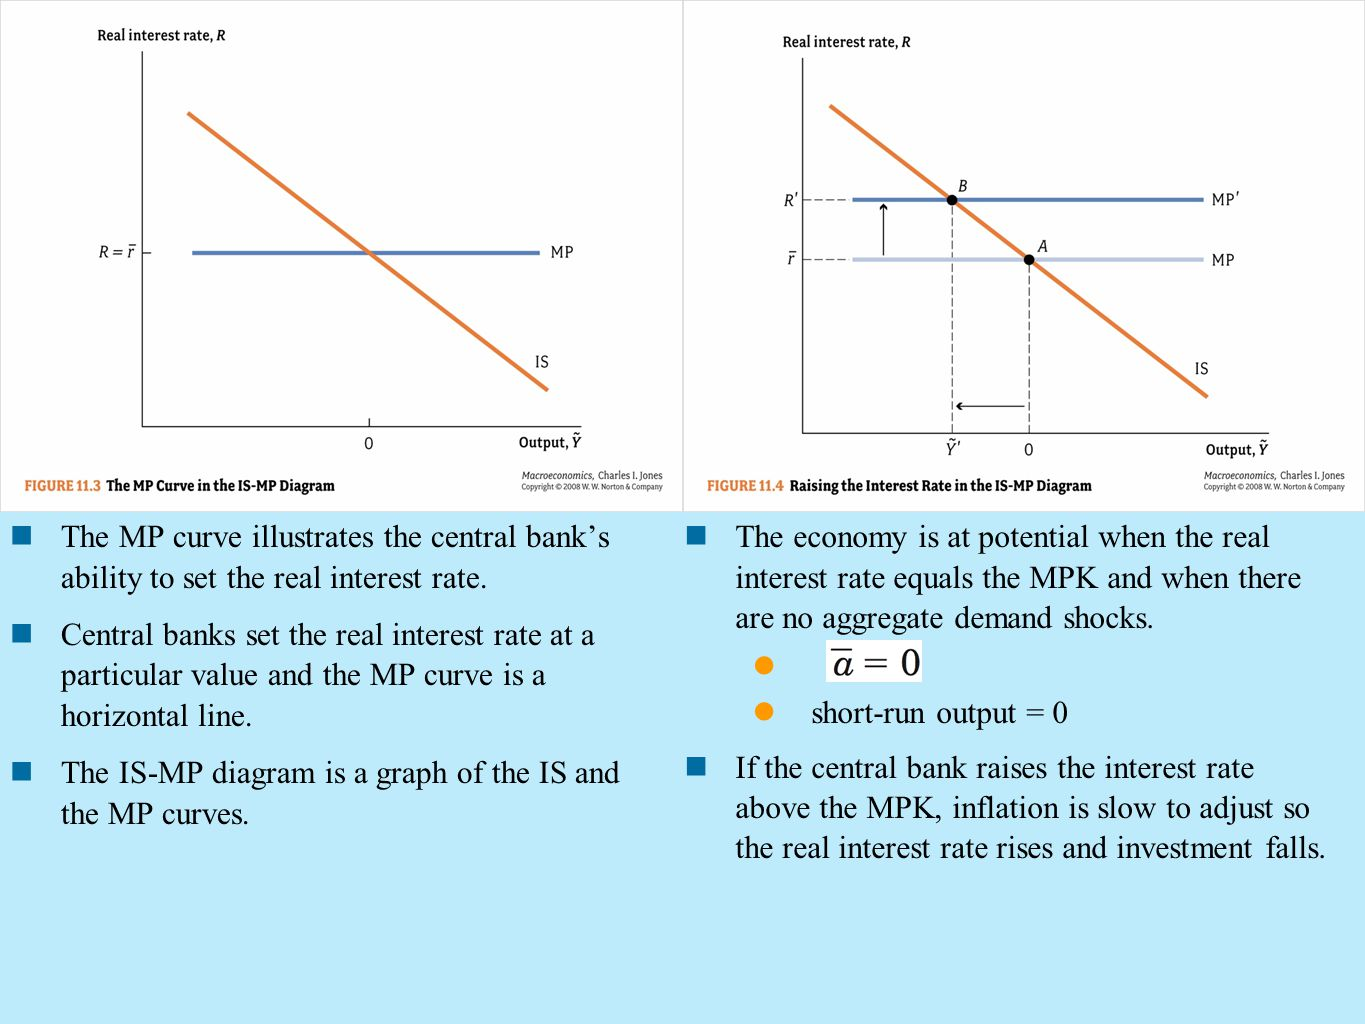 The MP curve illustrates the central bank's ability to set the real interest rate. Central banks set the real interest rate at a particular value and